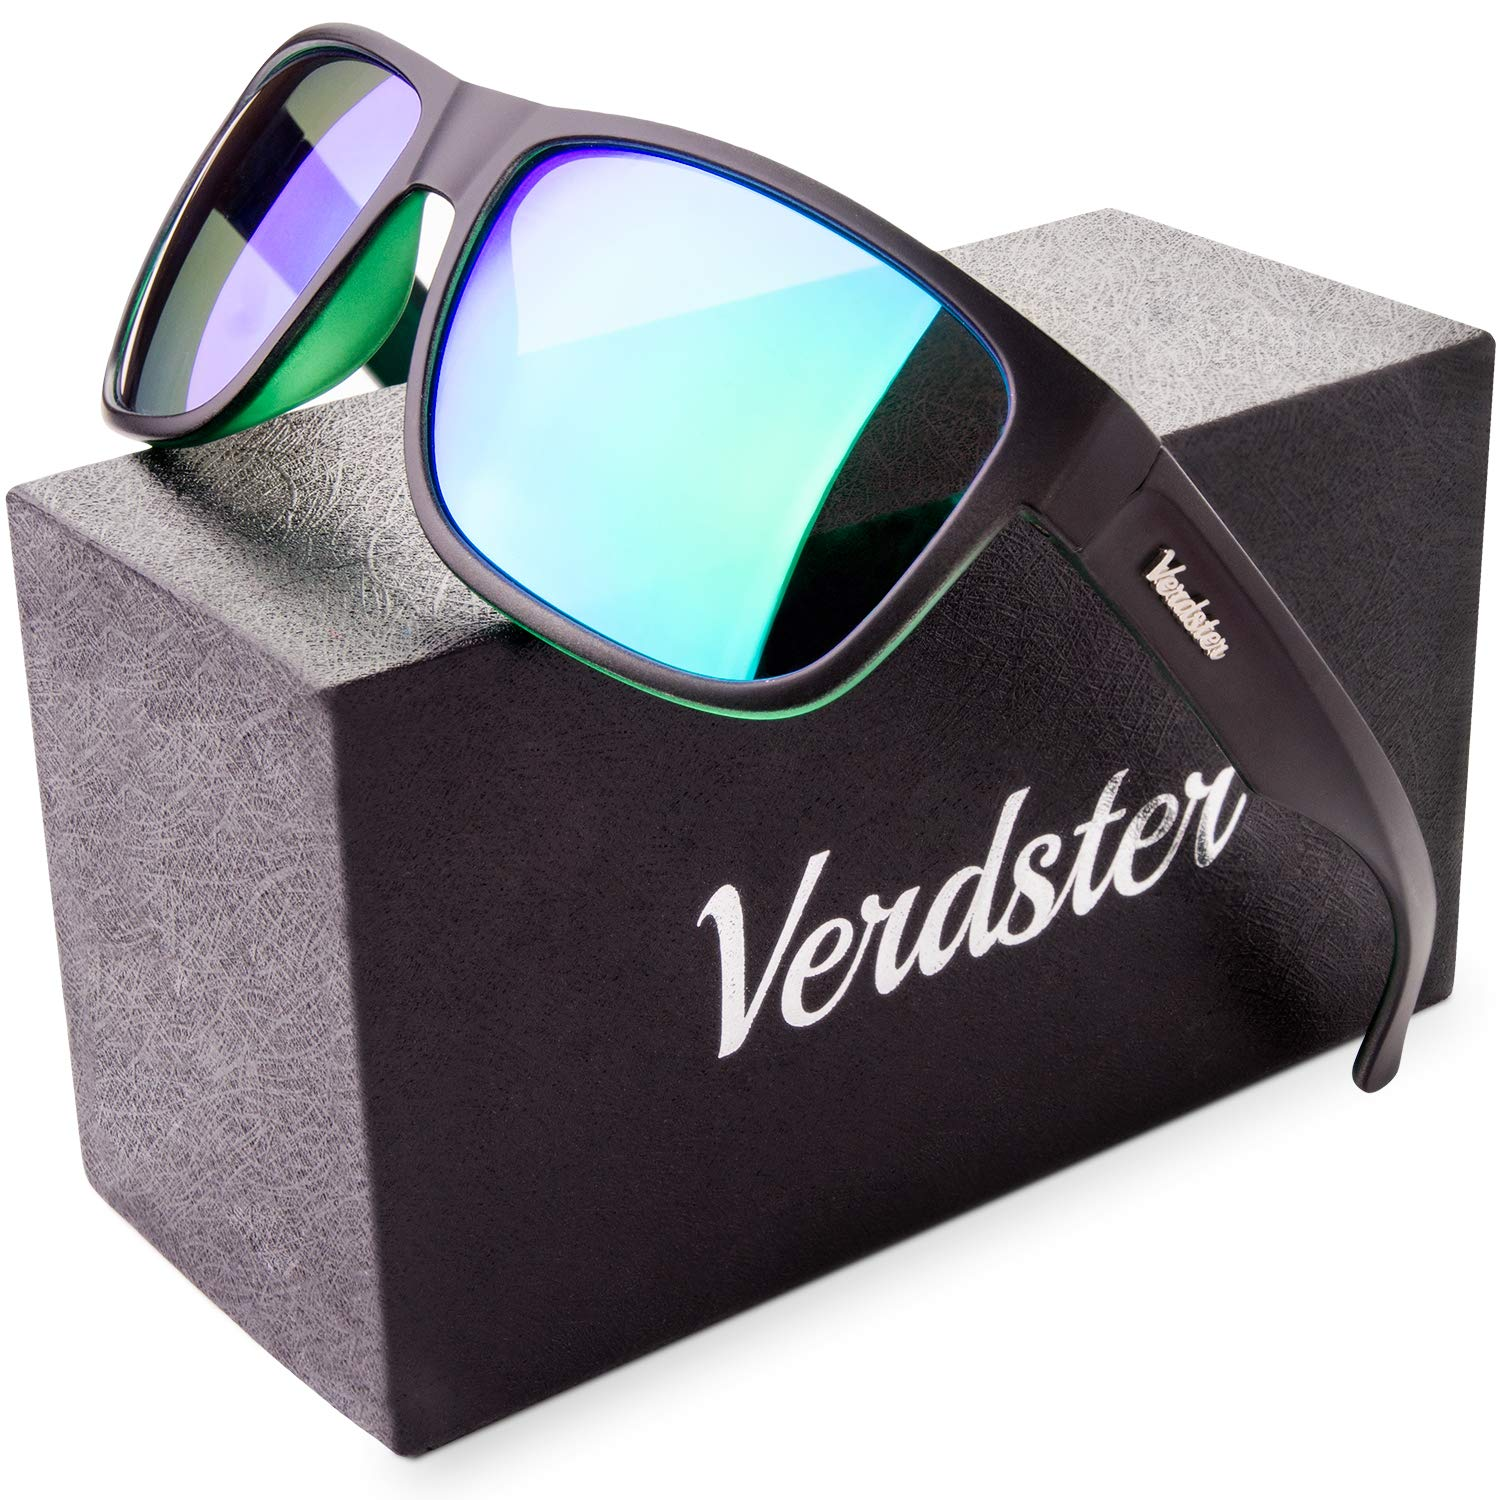 Verdster Mirrored Polarized Sunglasses for Men & Women - Trendy & Stylish Black Shades - Comes With Hardcase & Accessories